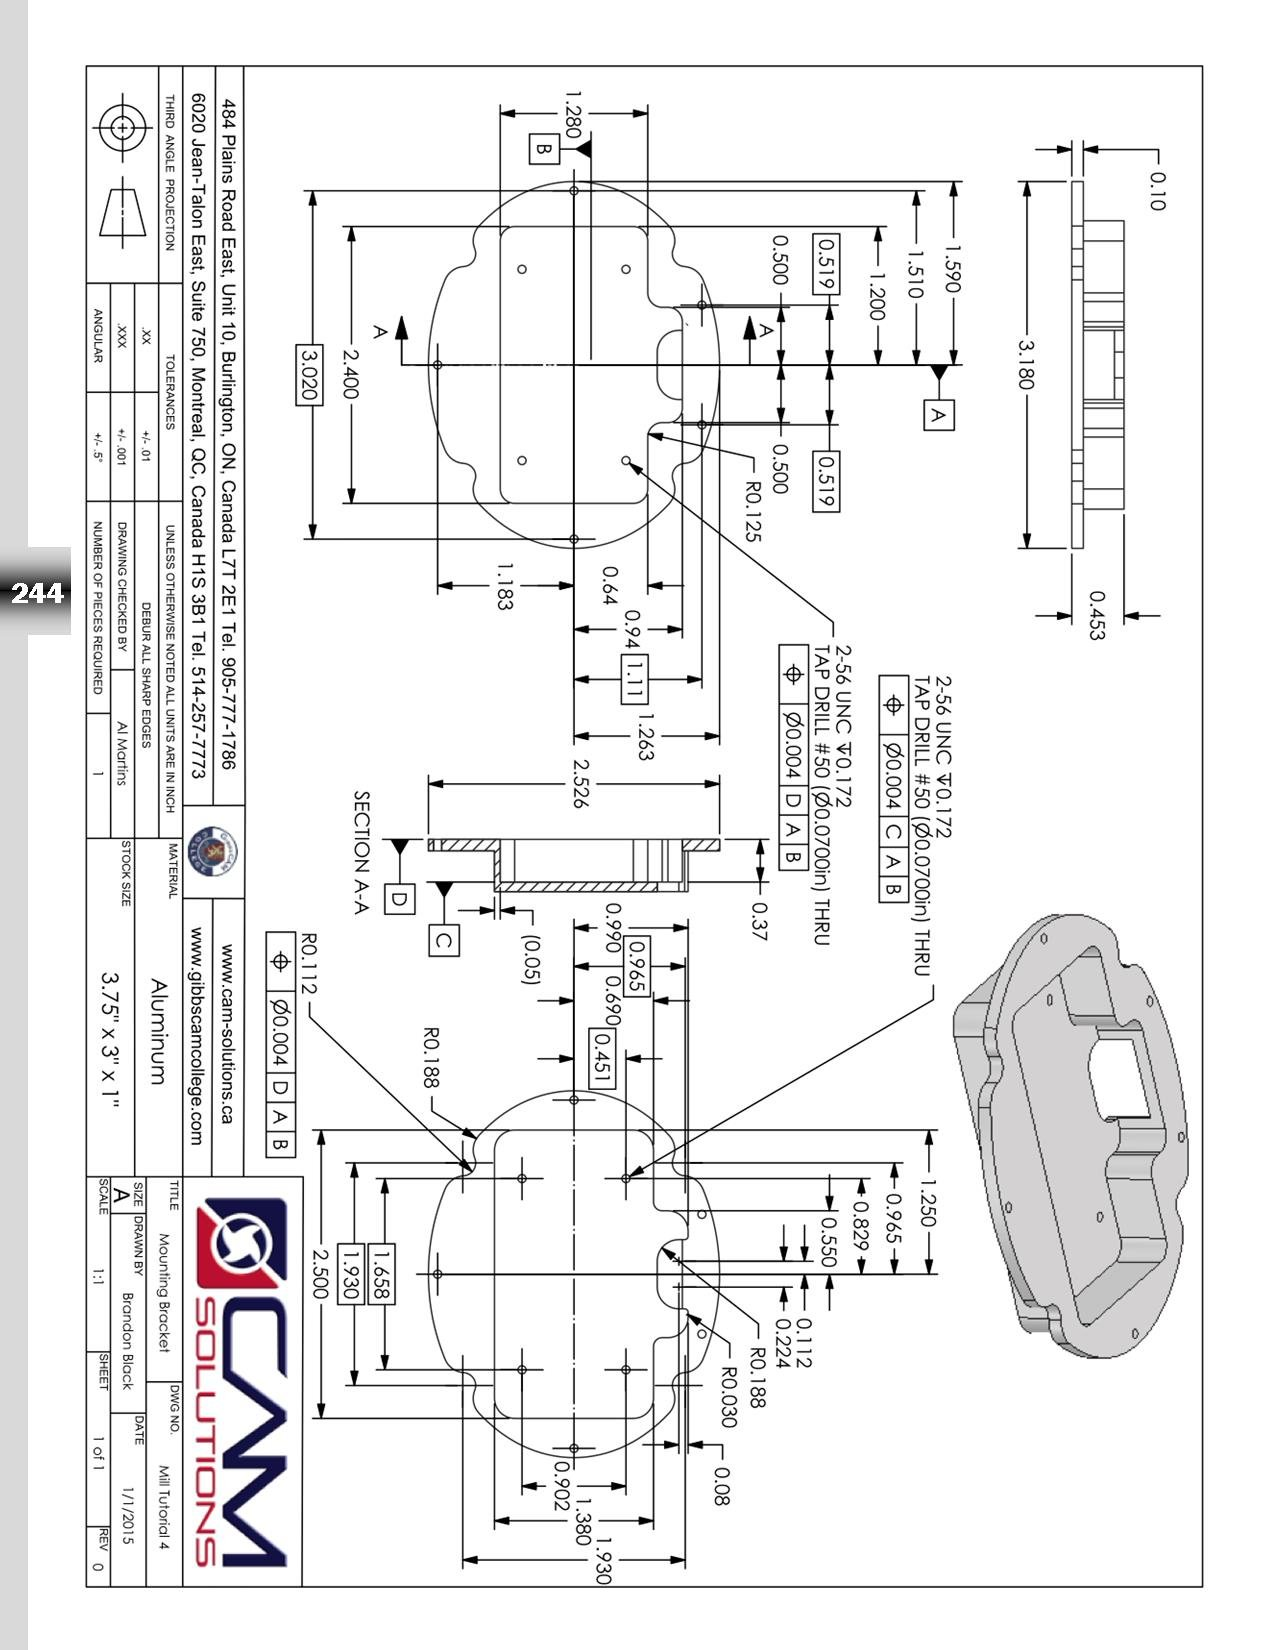 Gibbscam 2015 2016 Milling Textbook By Cam Solutions 08 02 Ball Mill Schematic For Pinterest Cad Cnc Engineering Specialists 9781928009054